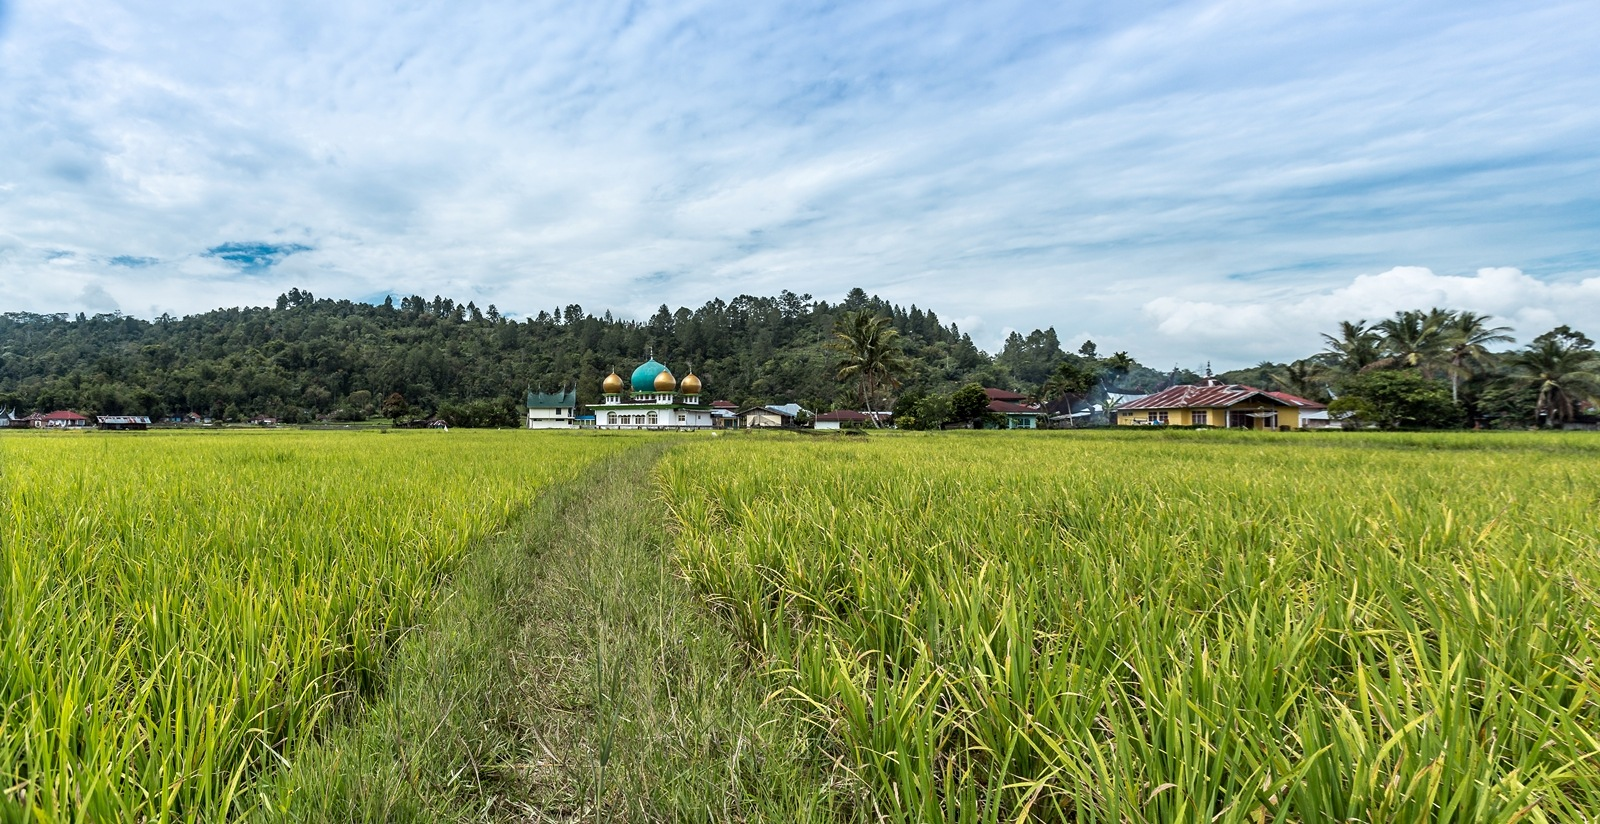 Masjid by the padi field. by Abd Rahman